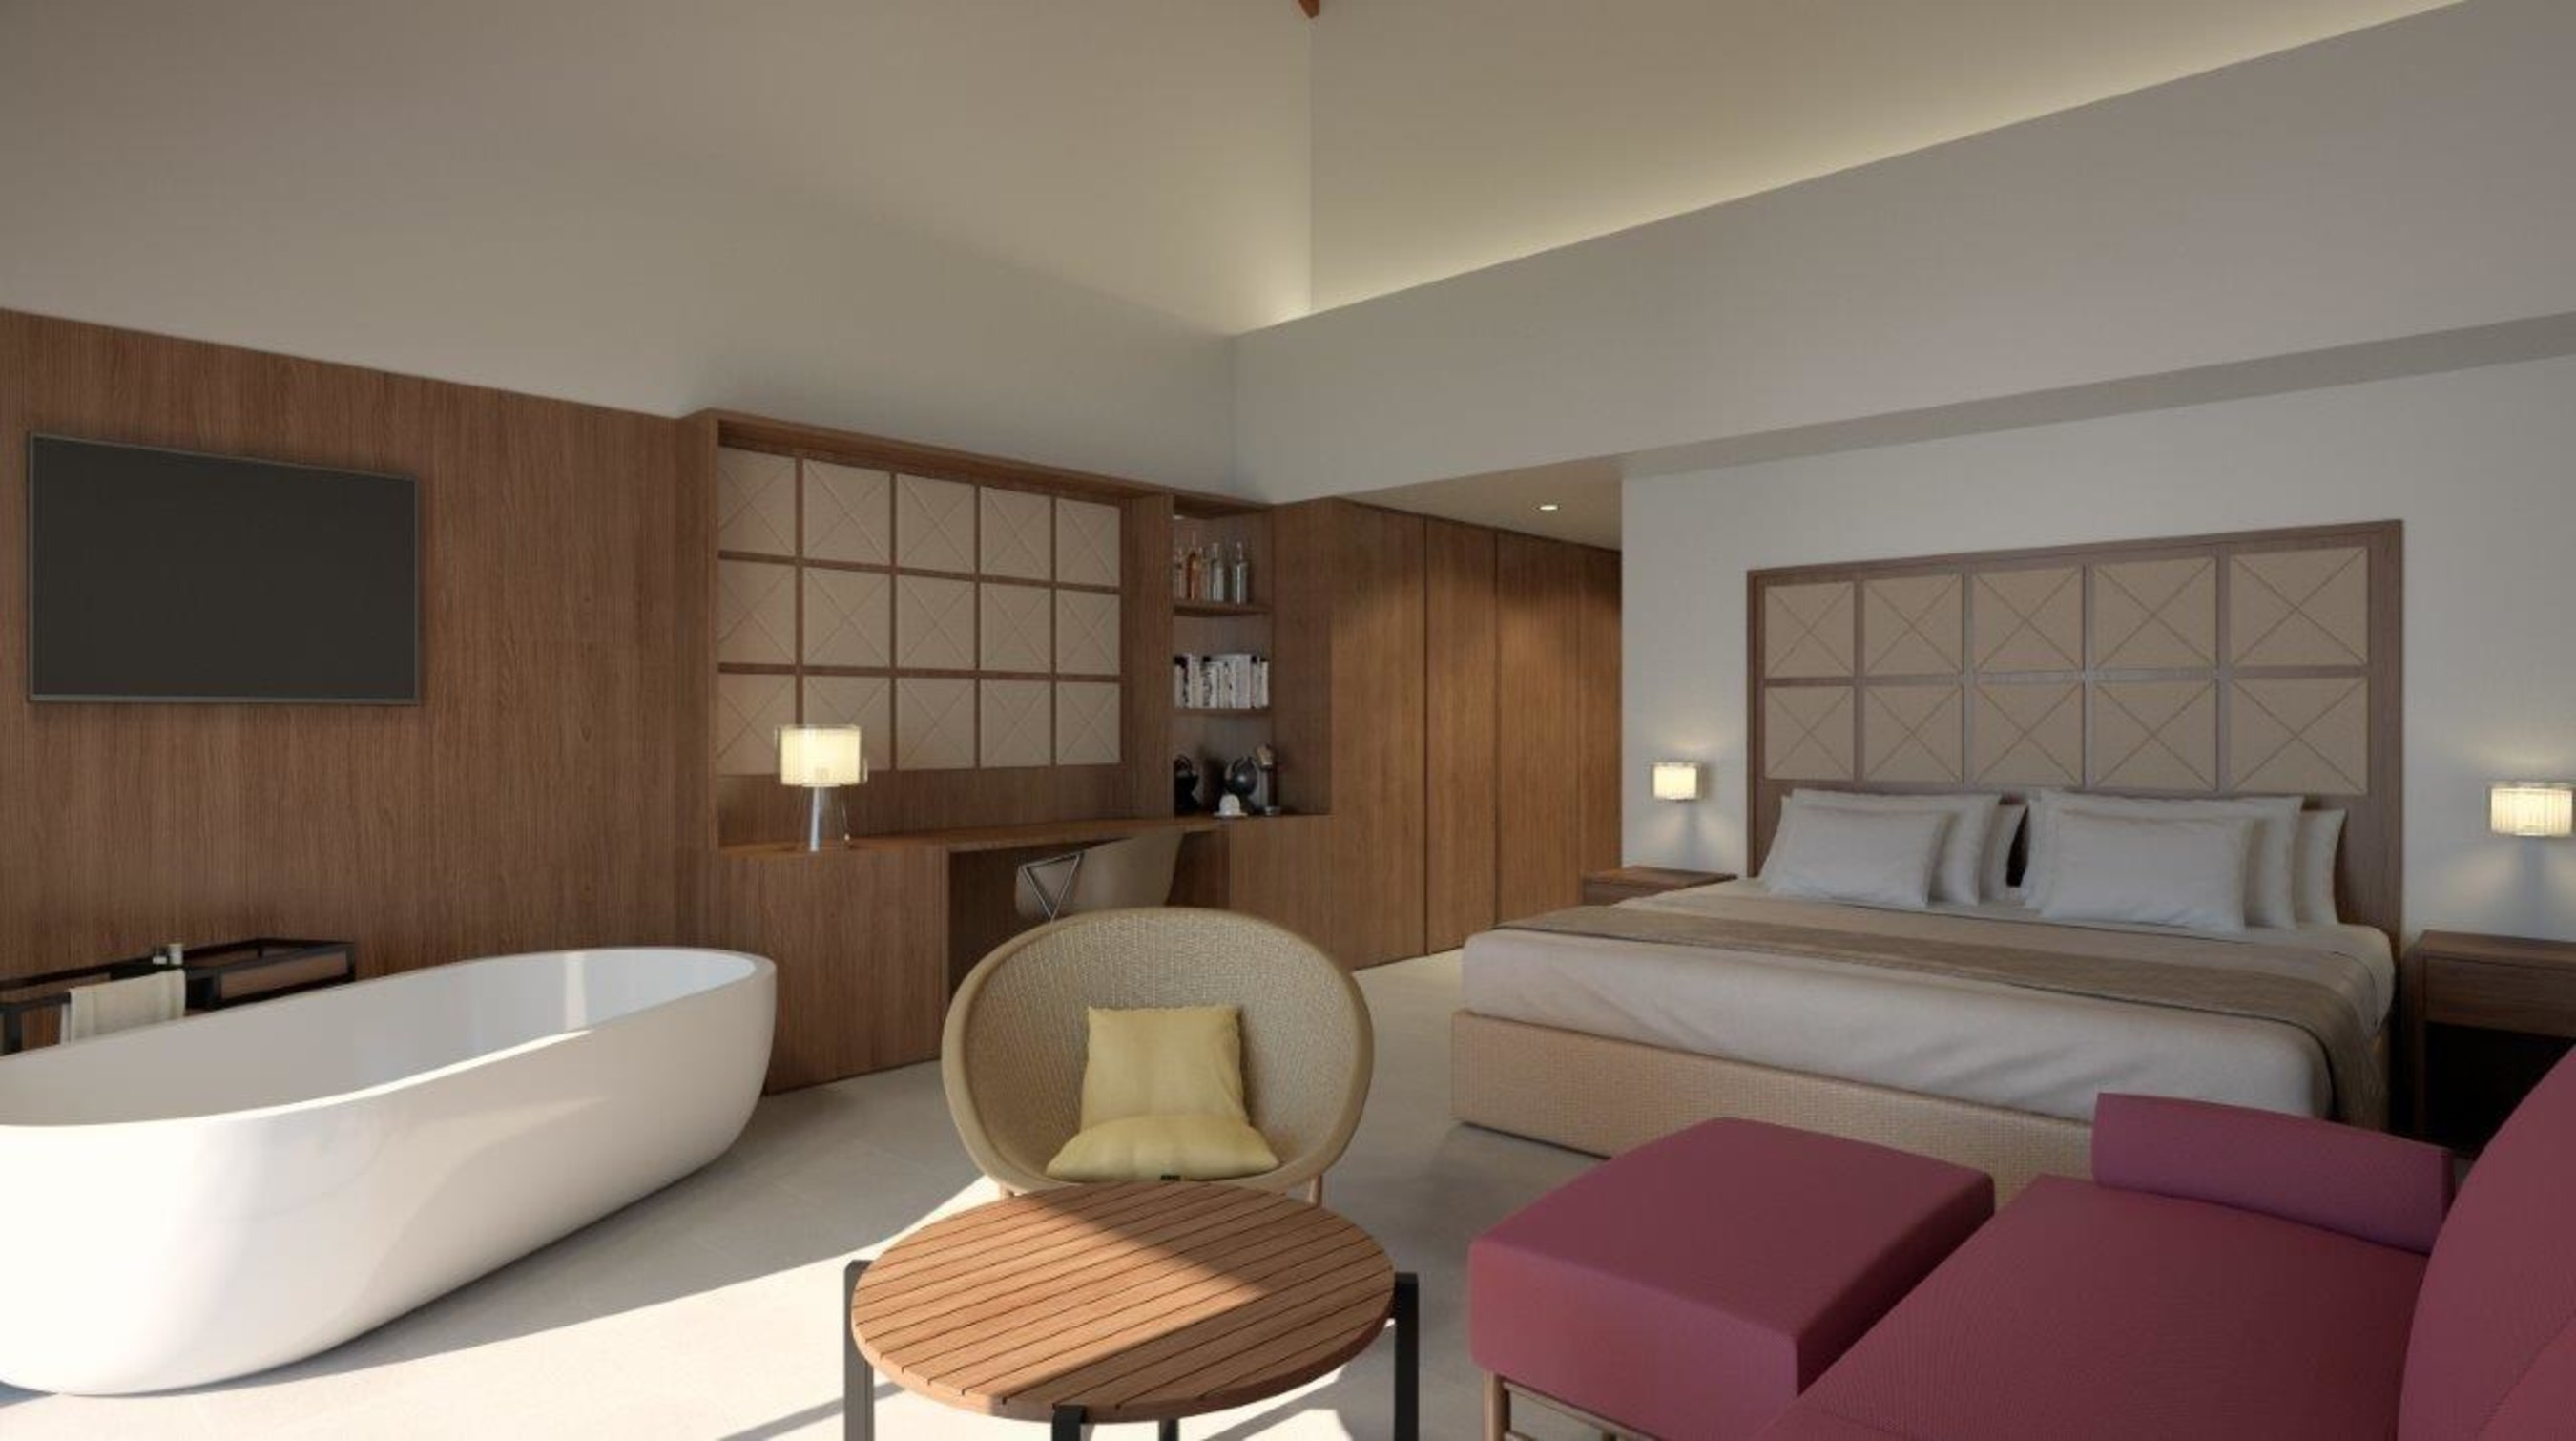 Rendering of new guestroom interior for Excellence Punta Cana all-inclusive resort.